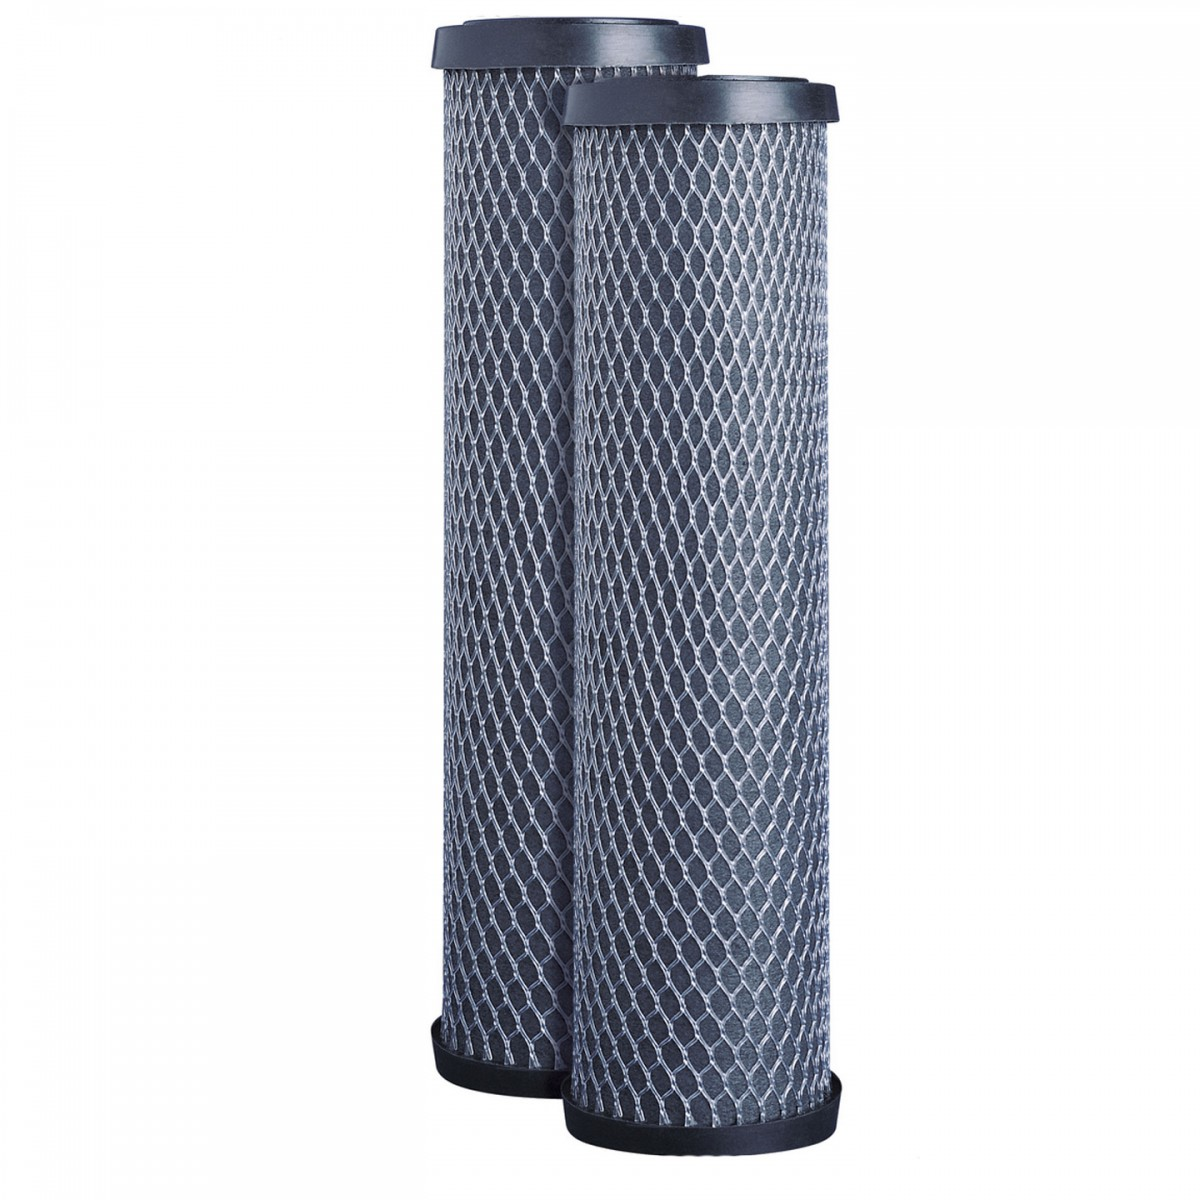 Whole House Filter Ge Smartwater Fxwtc Whole House Water Filter Replacement Cartridge